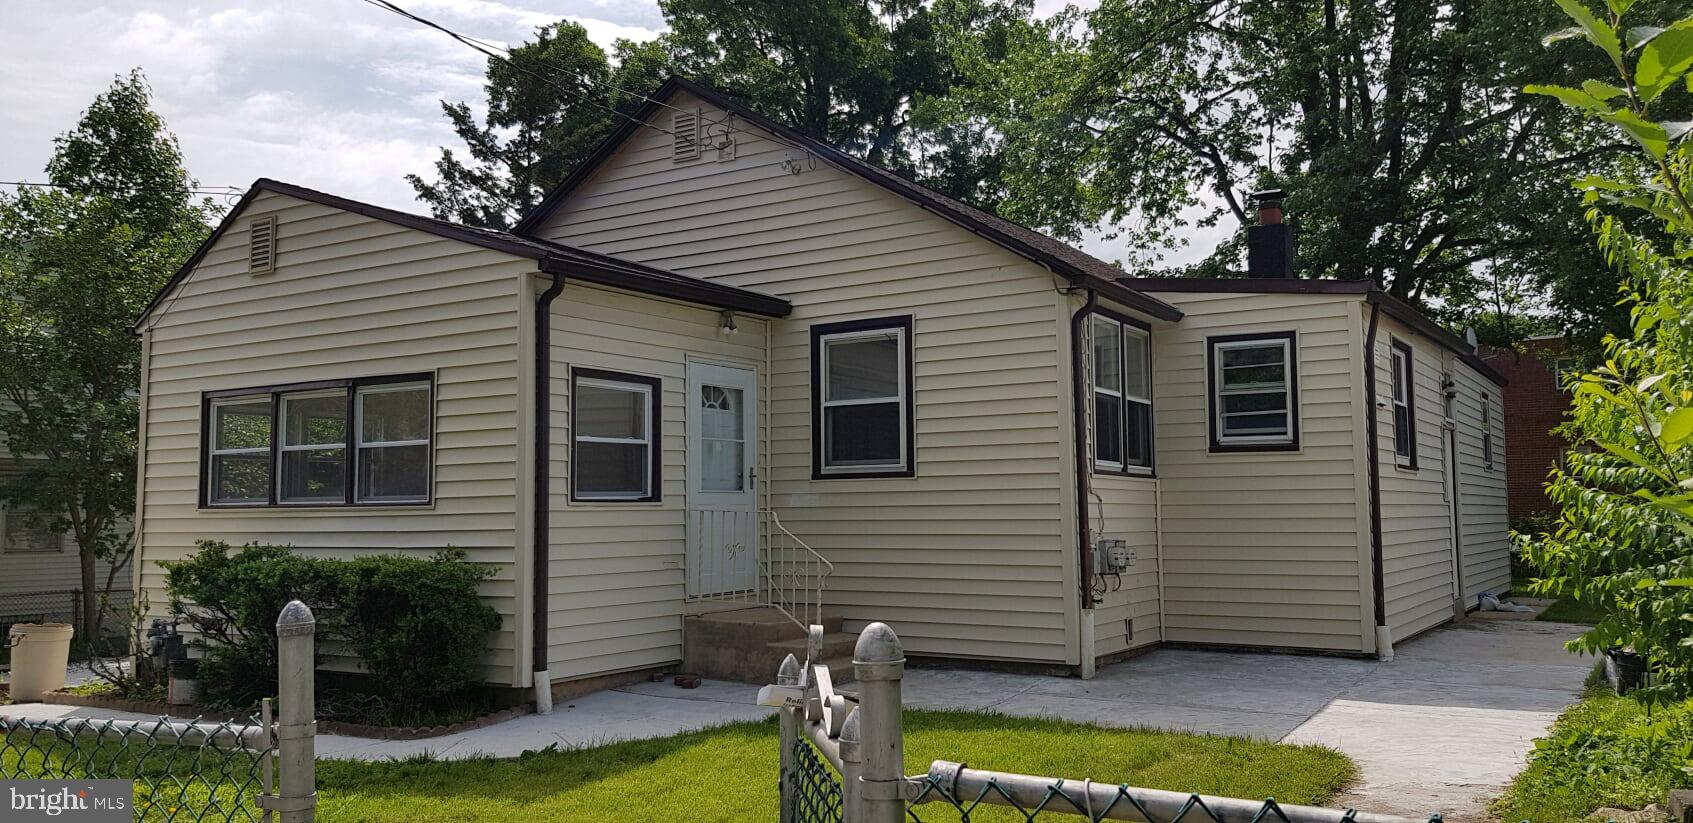 718 RIVELY AVENUE, COLLINGDALE, PA 19023